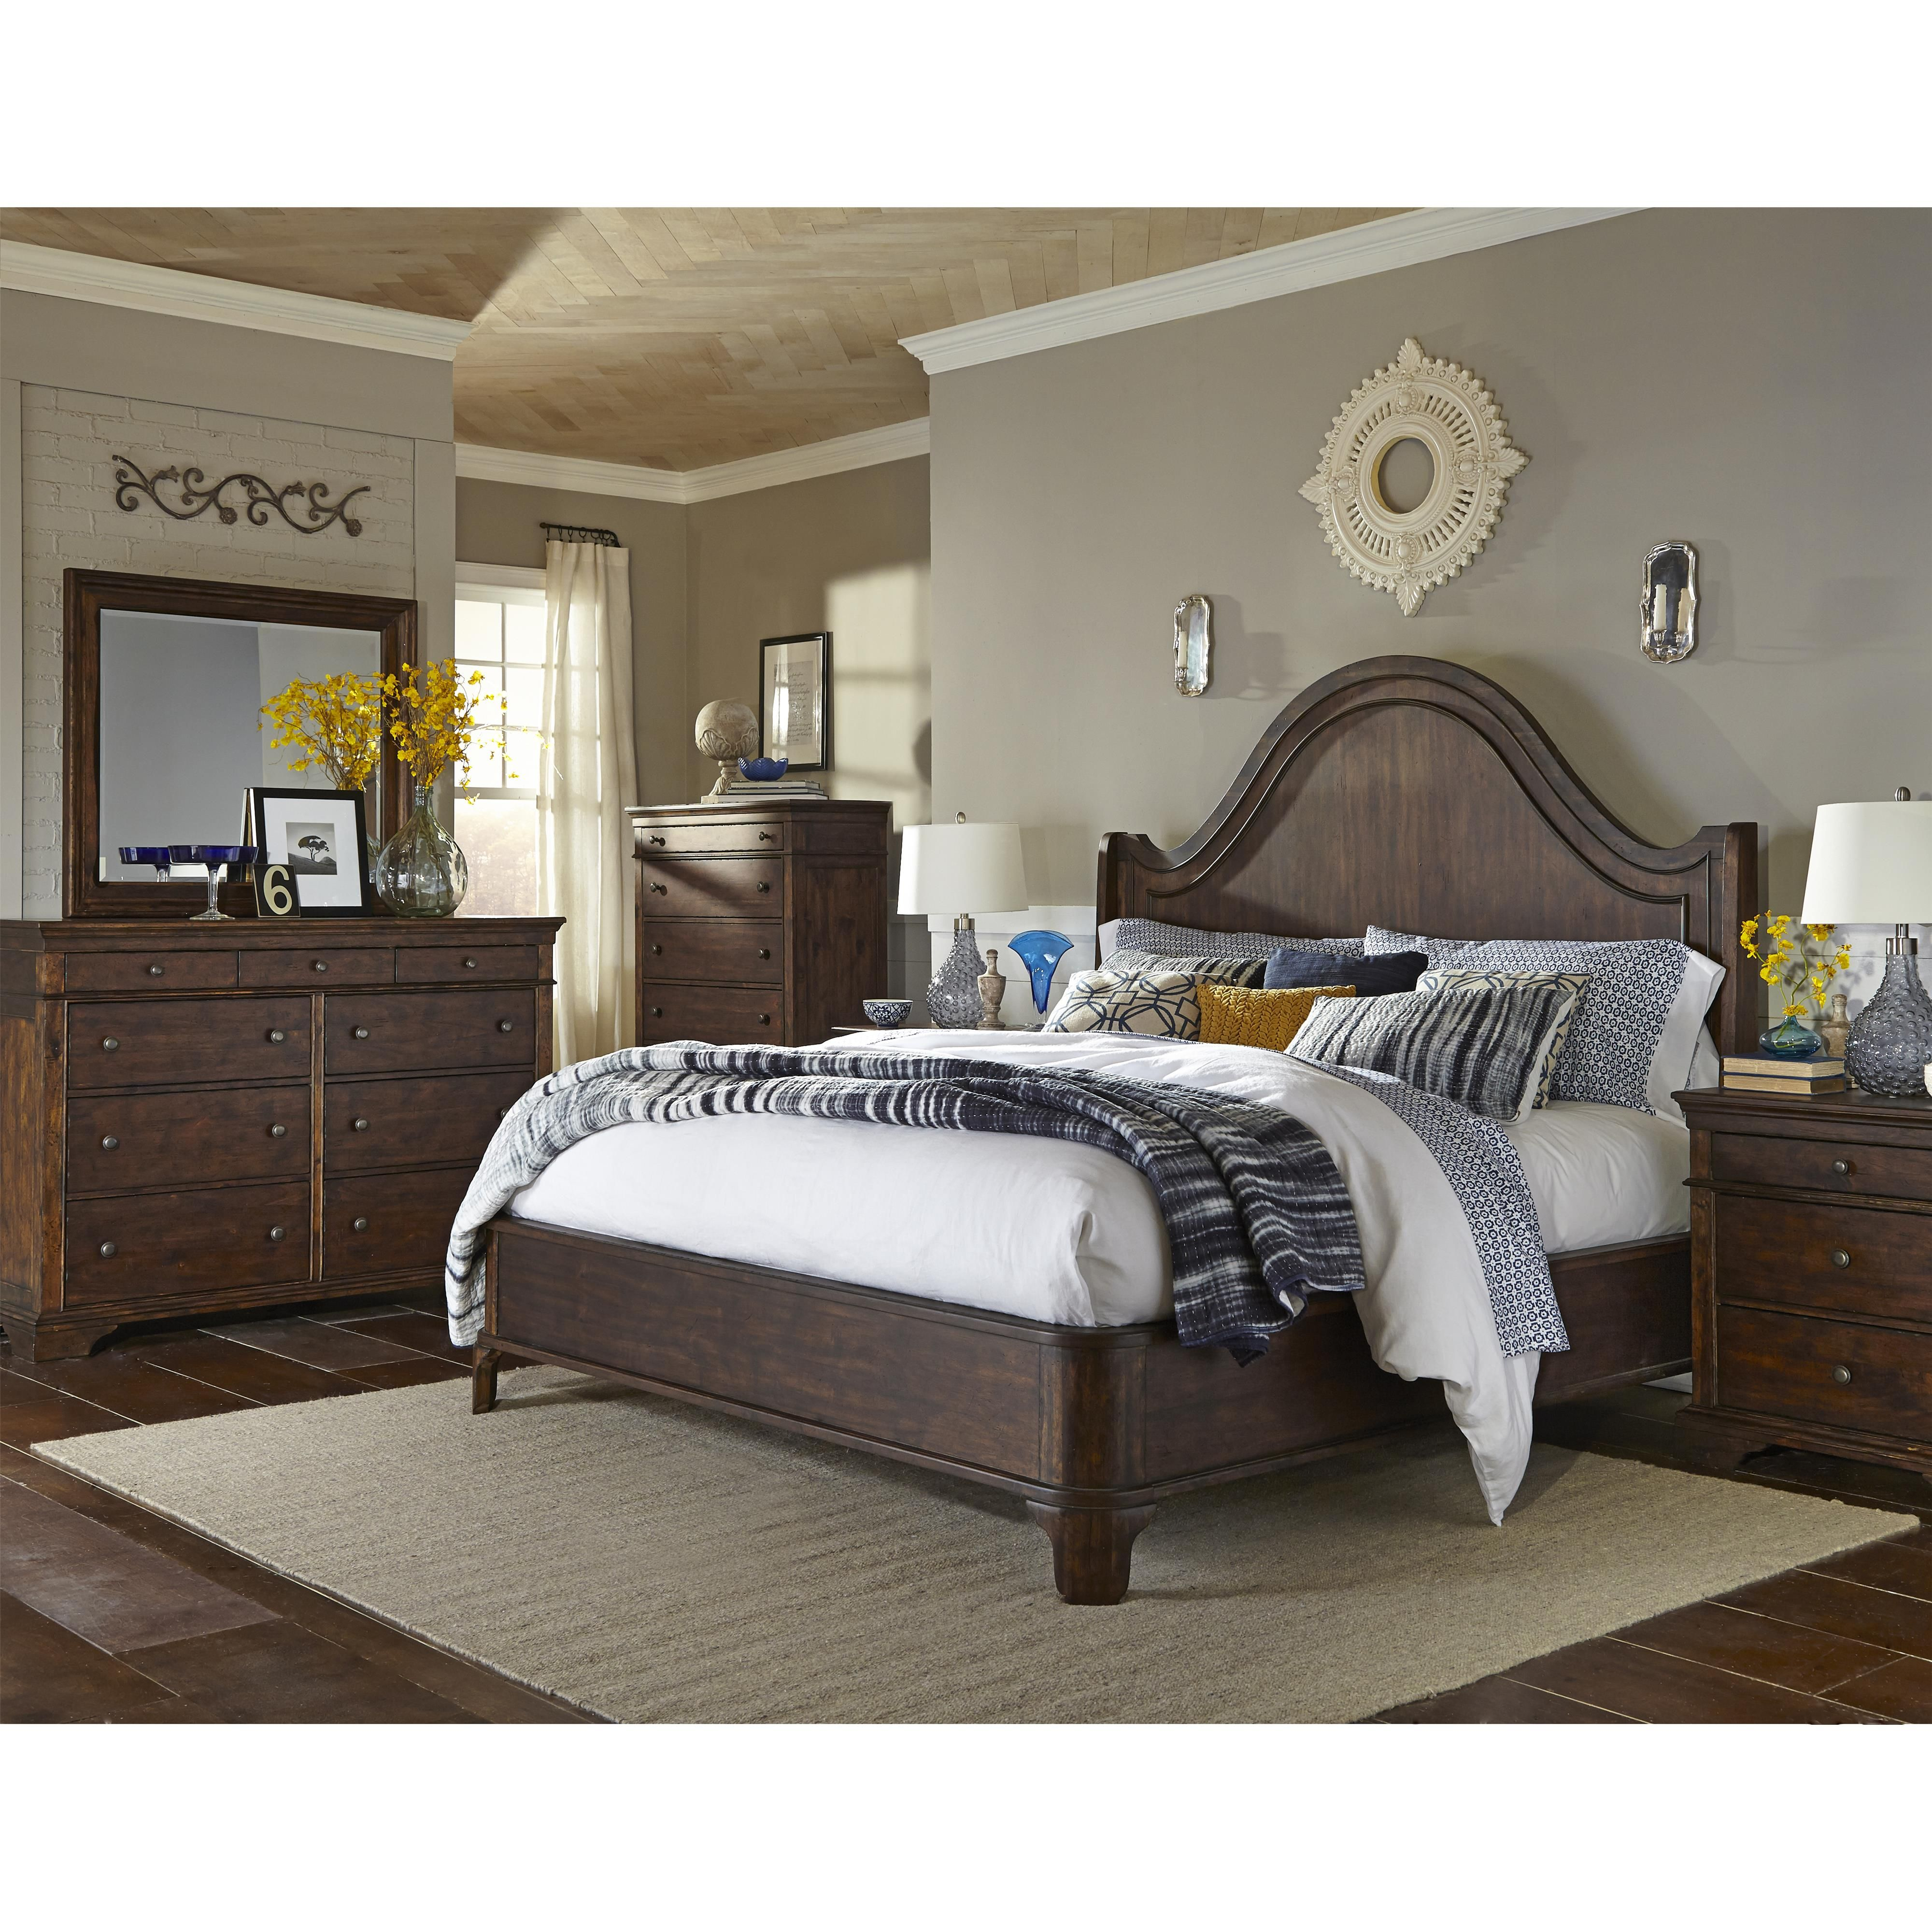 Trisha Yearwood Home Collection By Klaussner At Rotmans In Worcester, MA